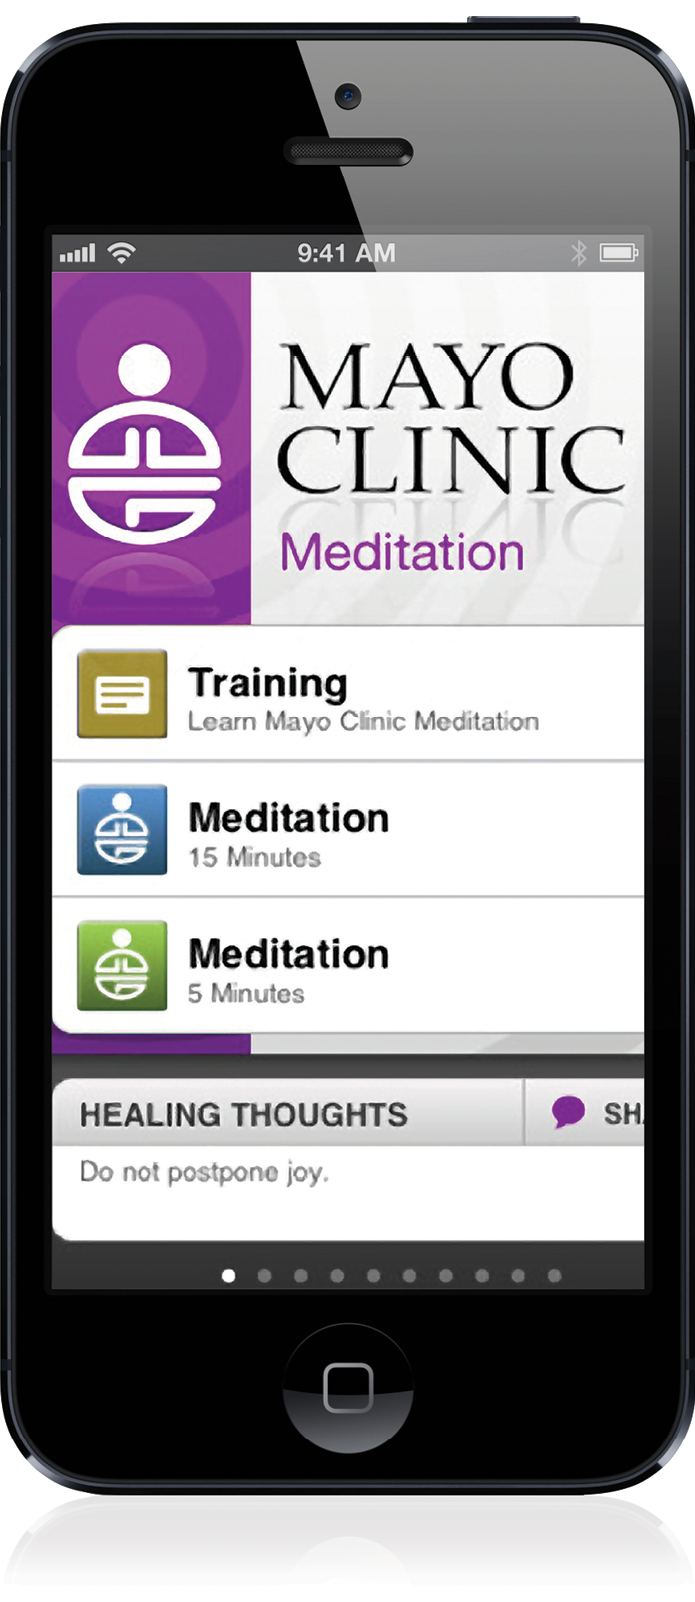 Mayo Clinic Meditation app